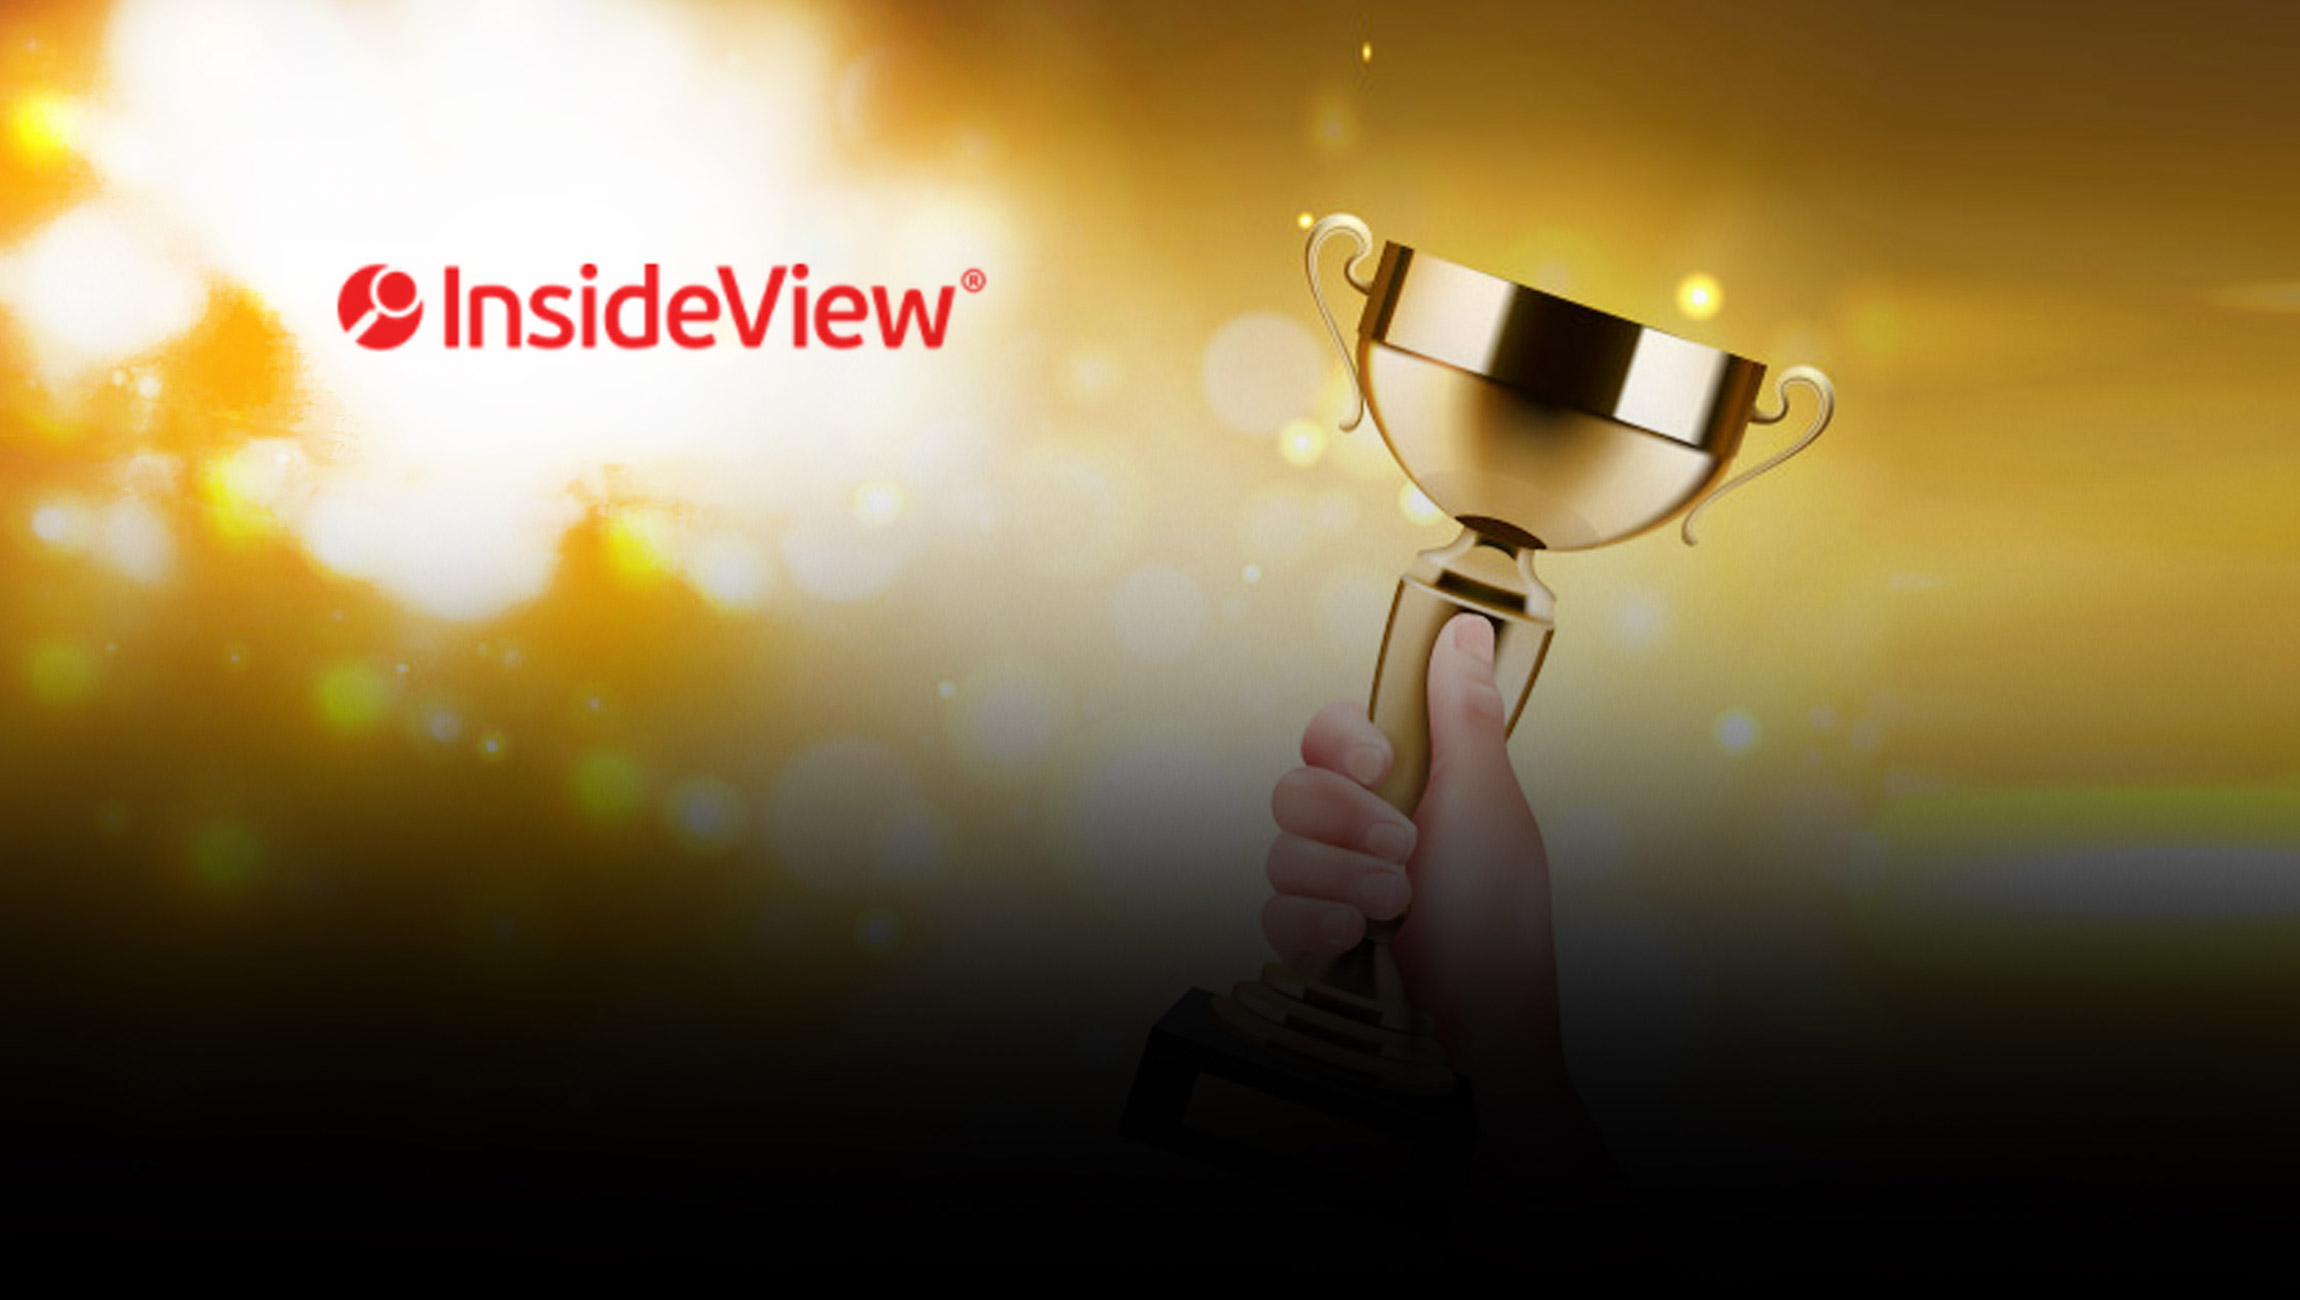 InsideView Earns A 2021 Top Rated Award From TrustRadius